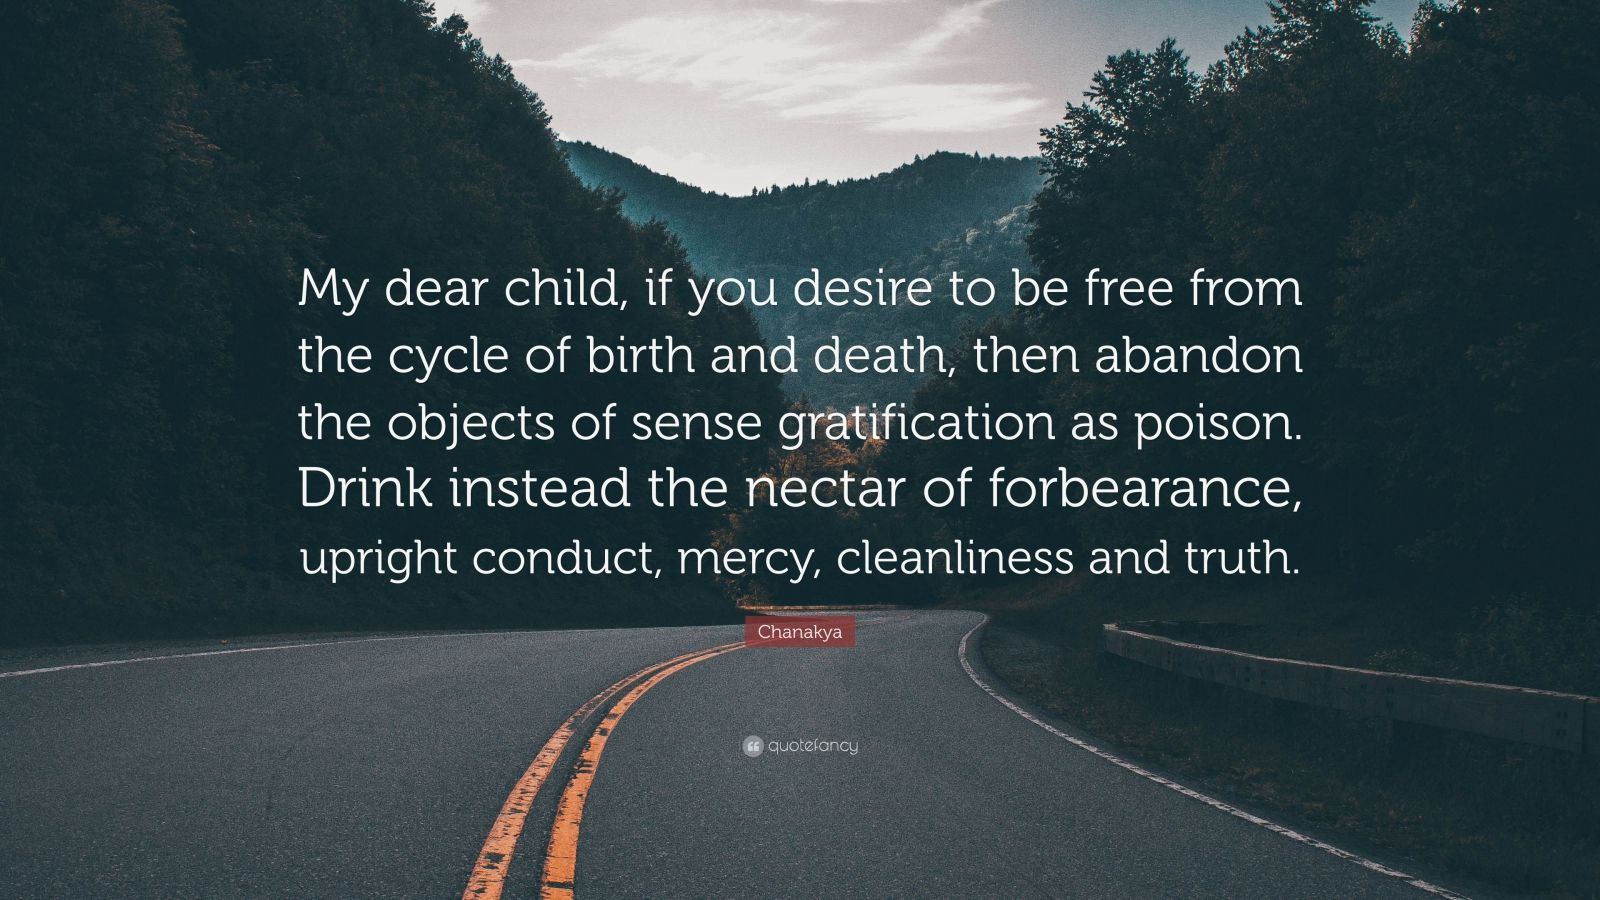 """Chanakya Quote: """"My dear child, if you desire to be free from the cycle of birth and death, then abandon the objects of sense gratification as poison. Drink instead the nectar of forbearance, upright conduct, mercy, cleanliness and truth."""""""